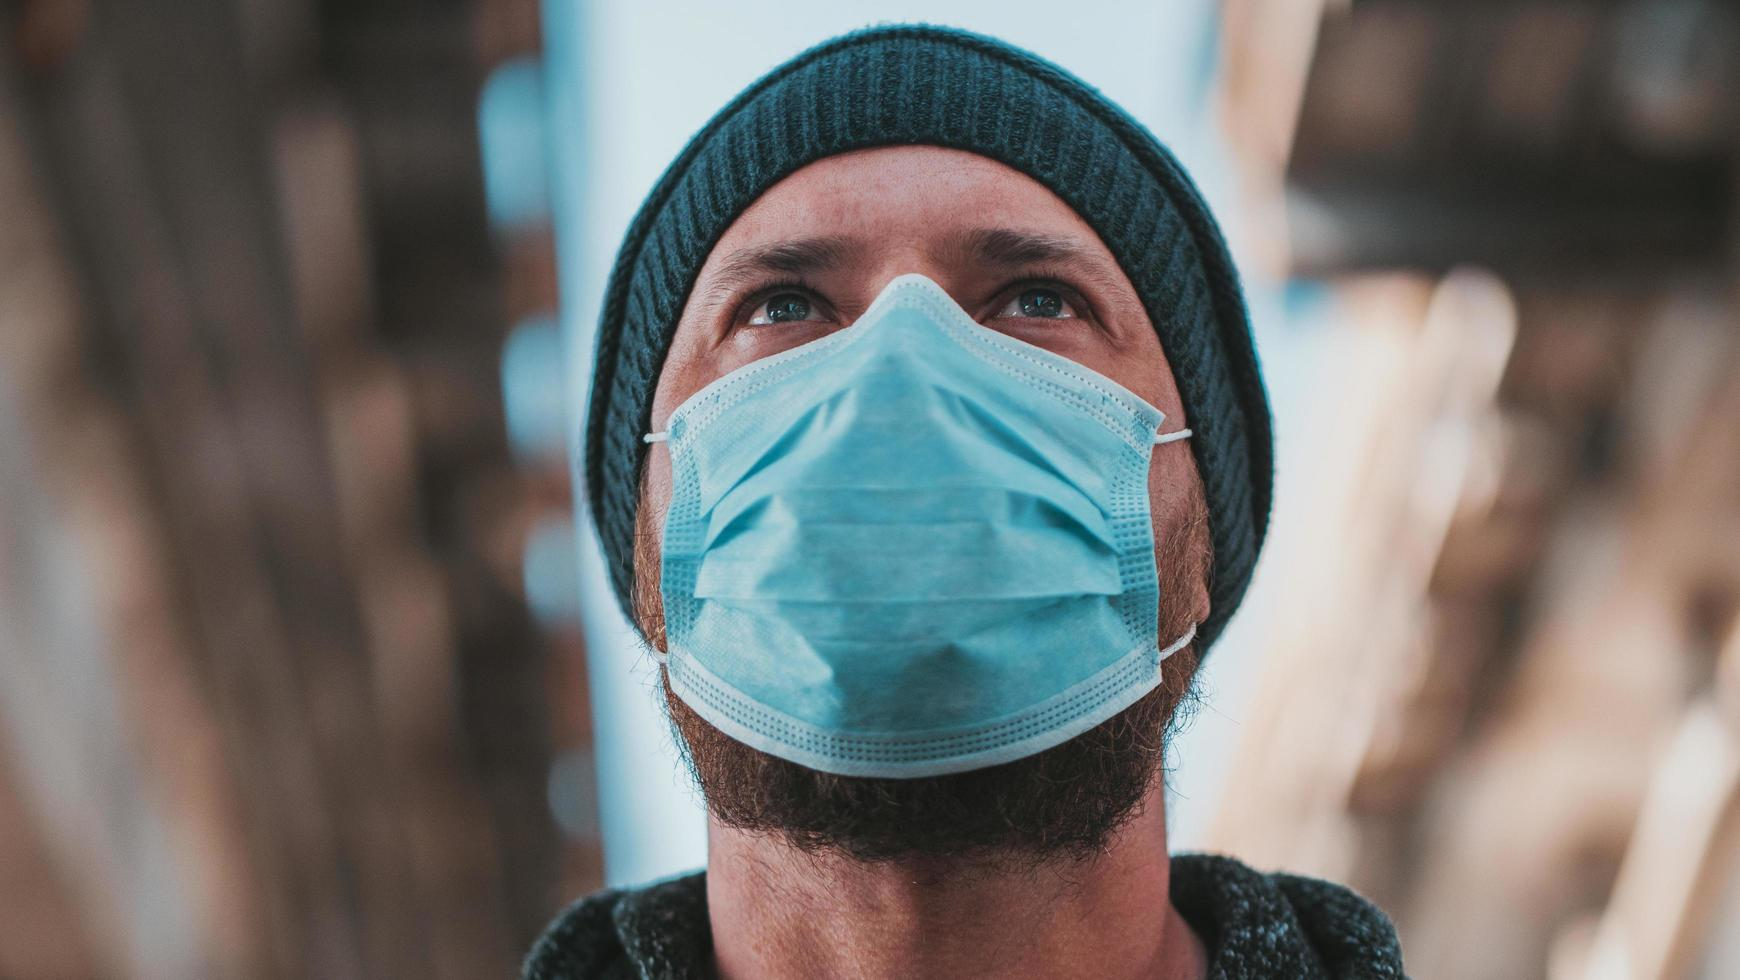 Man in a medical mask photo